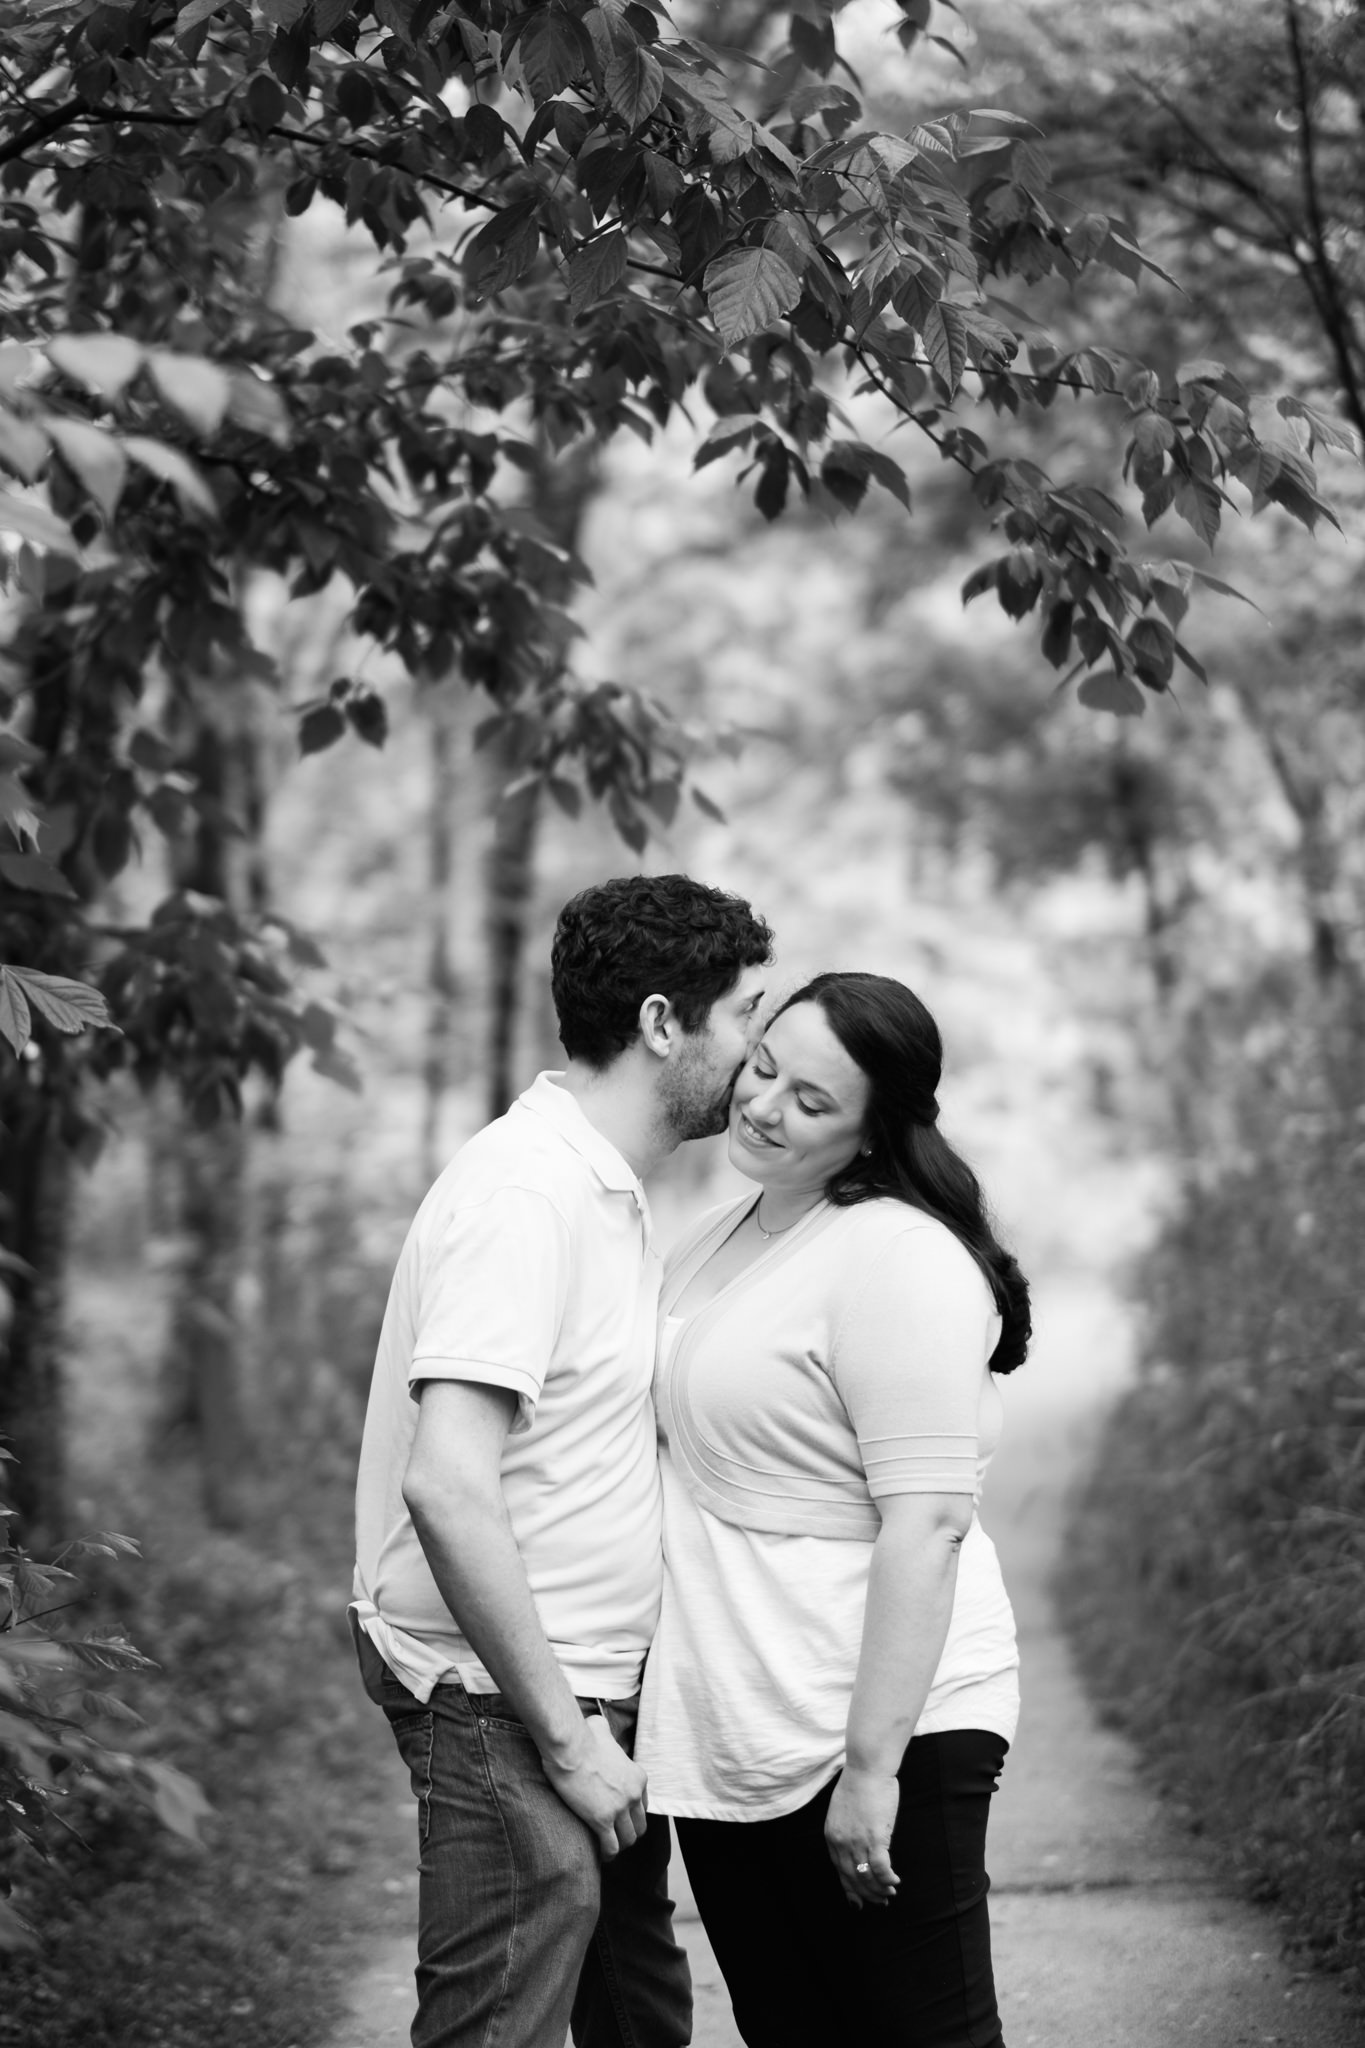 Lee&Steven_Engagement_Blog_0004.jpg